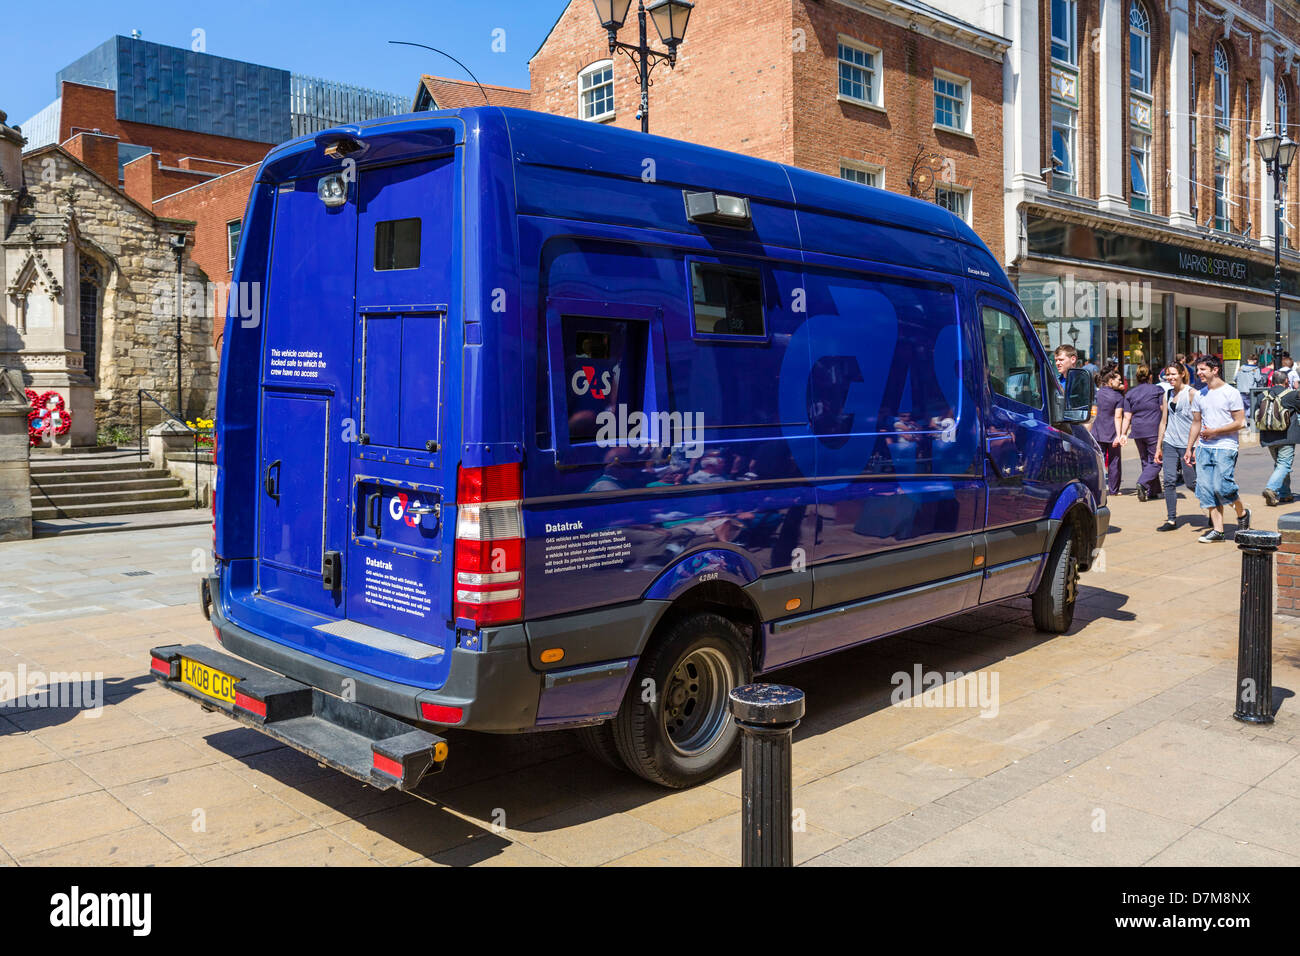 A G4S security van in the town centre, Lincoln, East Midlands, England, UK - Stock Image